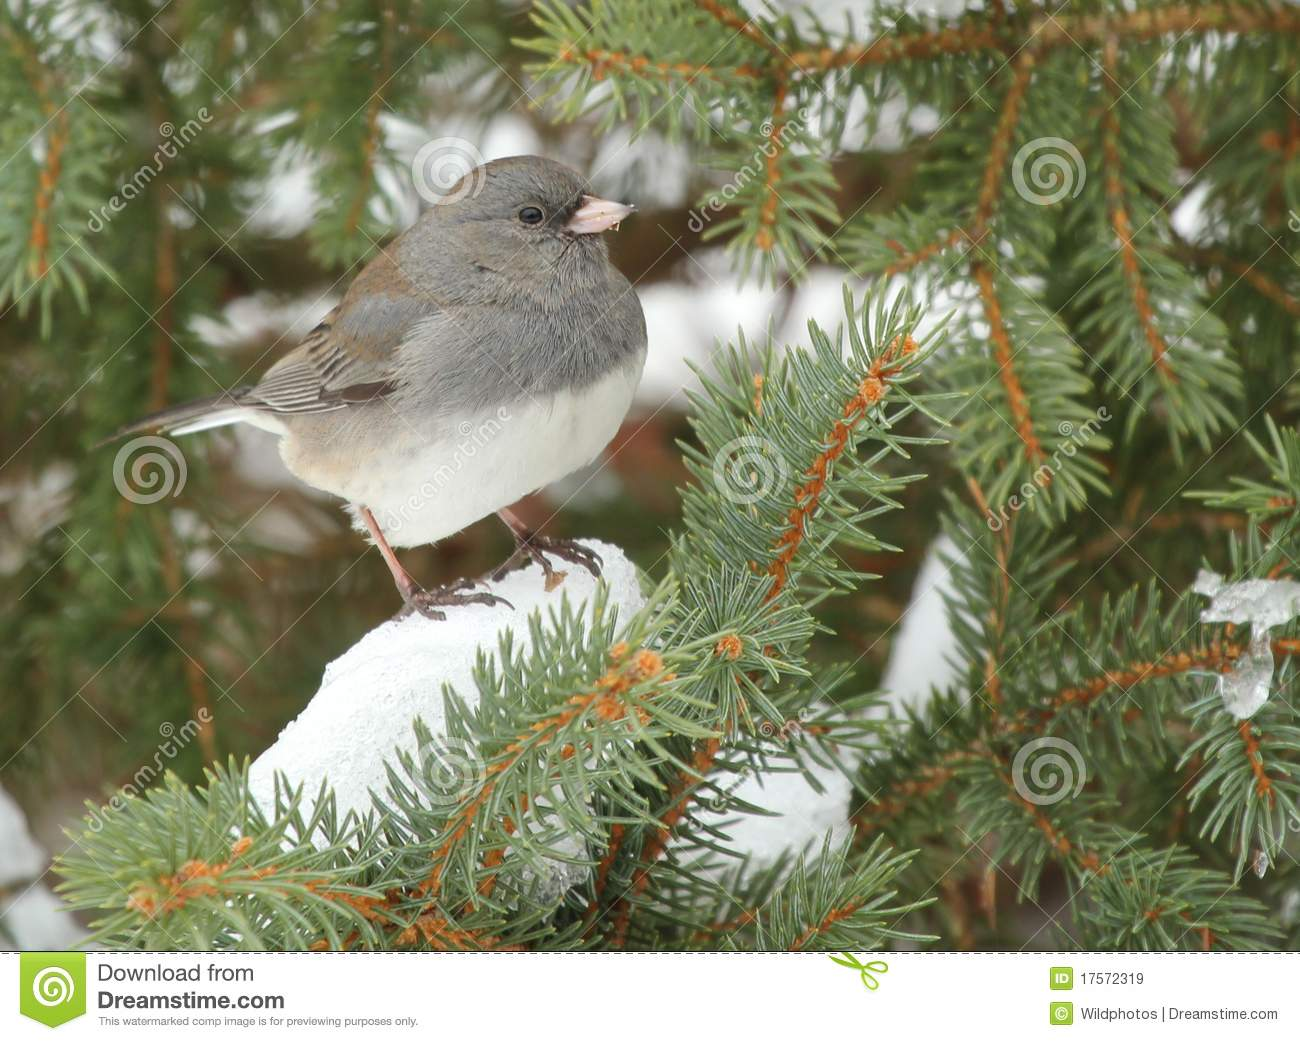 Junco Dark-eyed sul evergreen nevoso